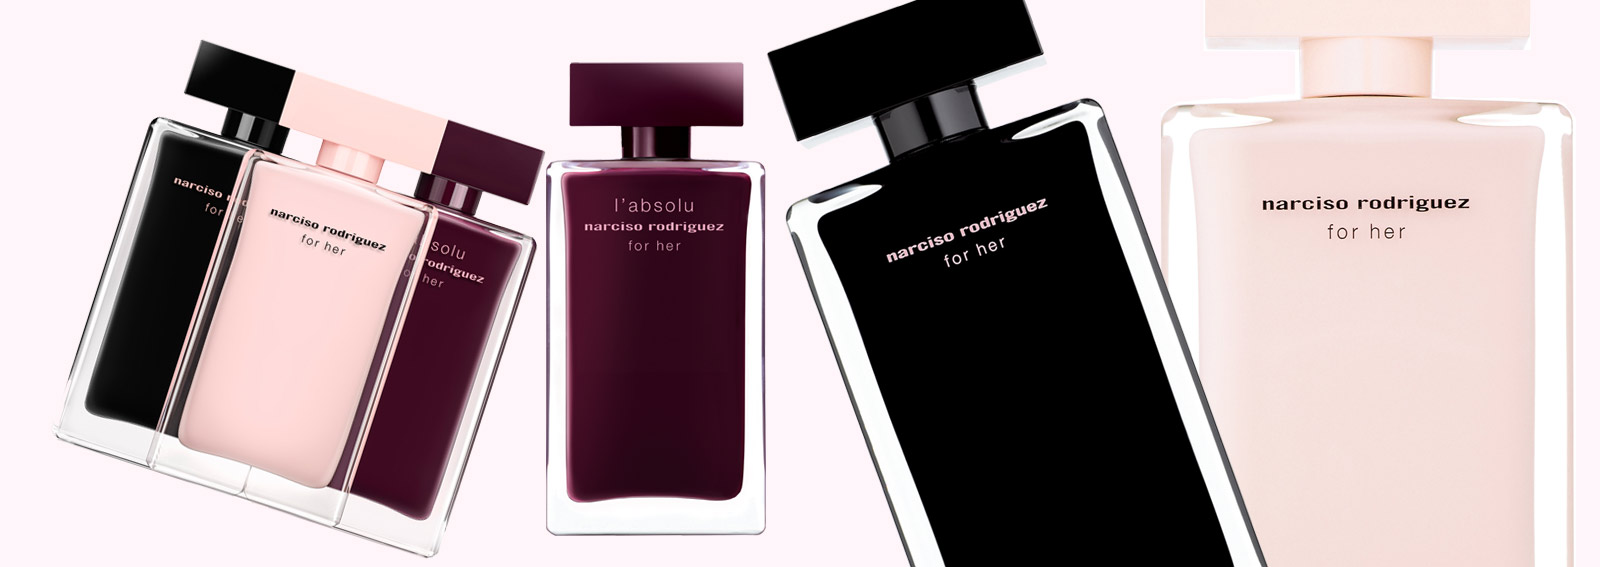 cover-narciso-rodriguez-for-her-desktop